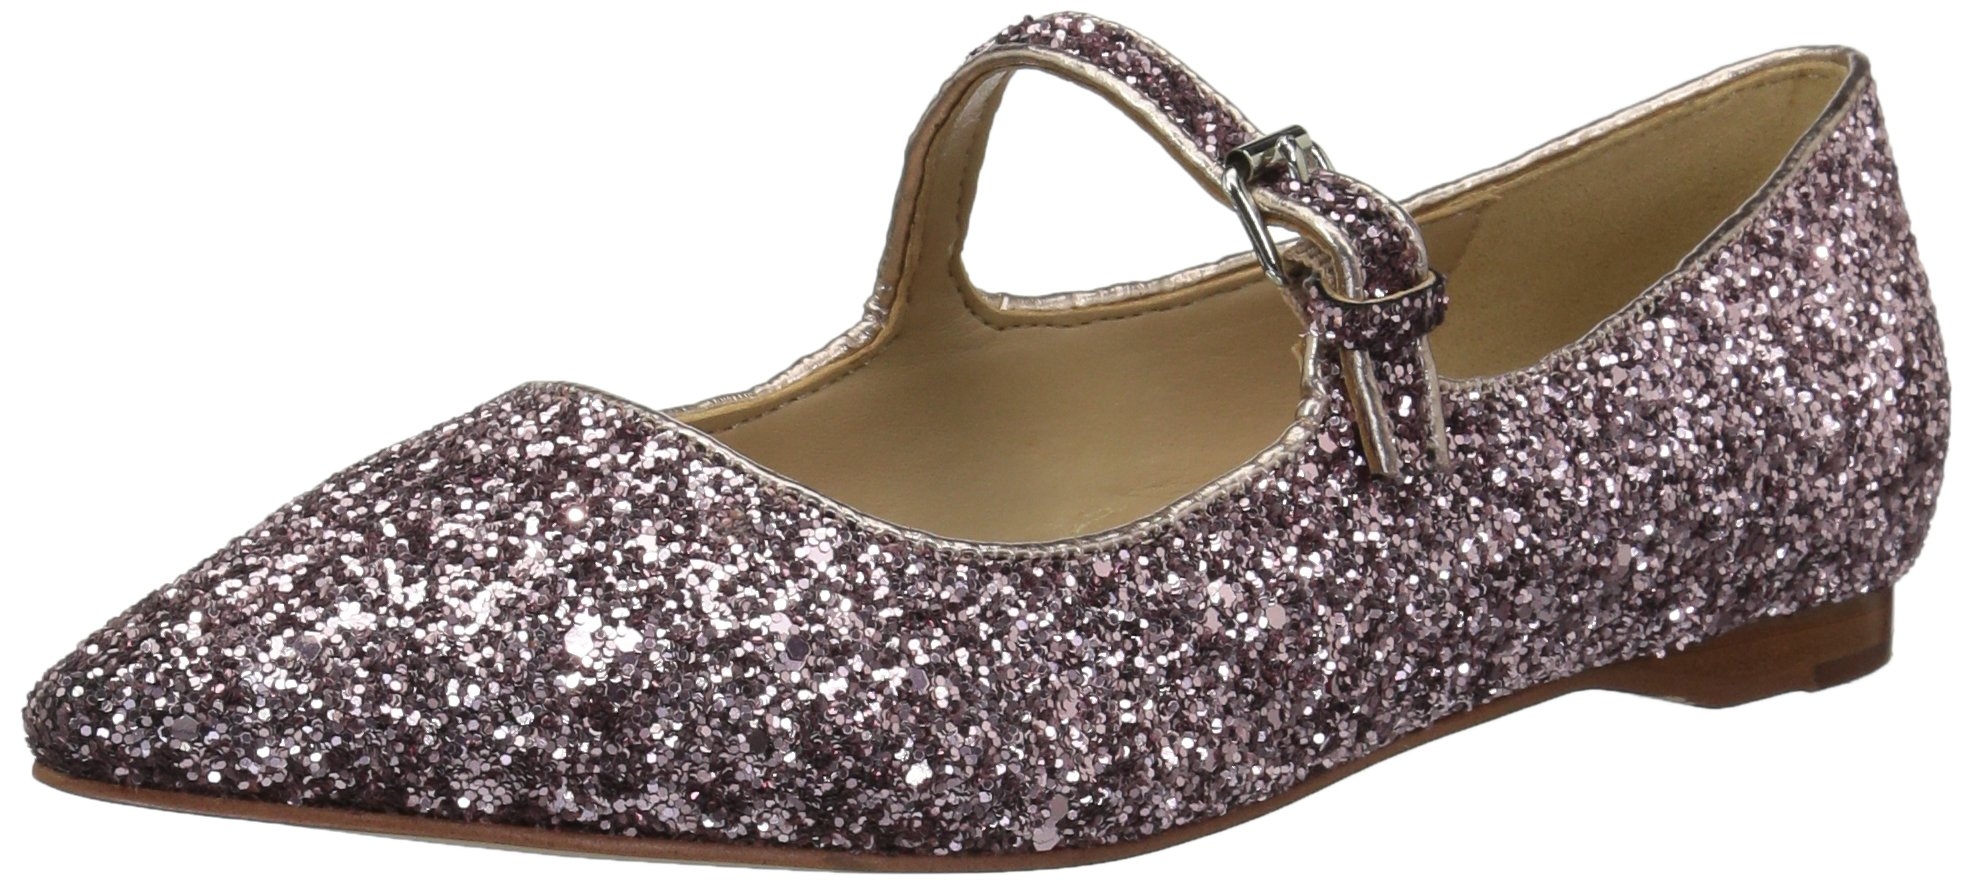 The Fix Women's Estrella Mary Jane Glitter Ballet Pointed Toe Flat, Pink, 8 B US